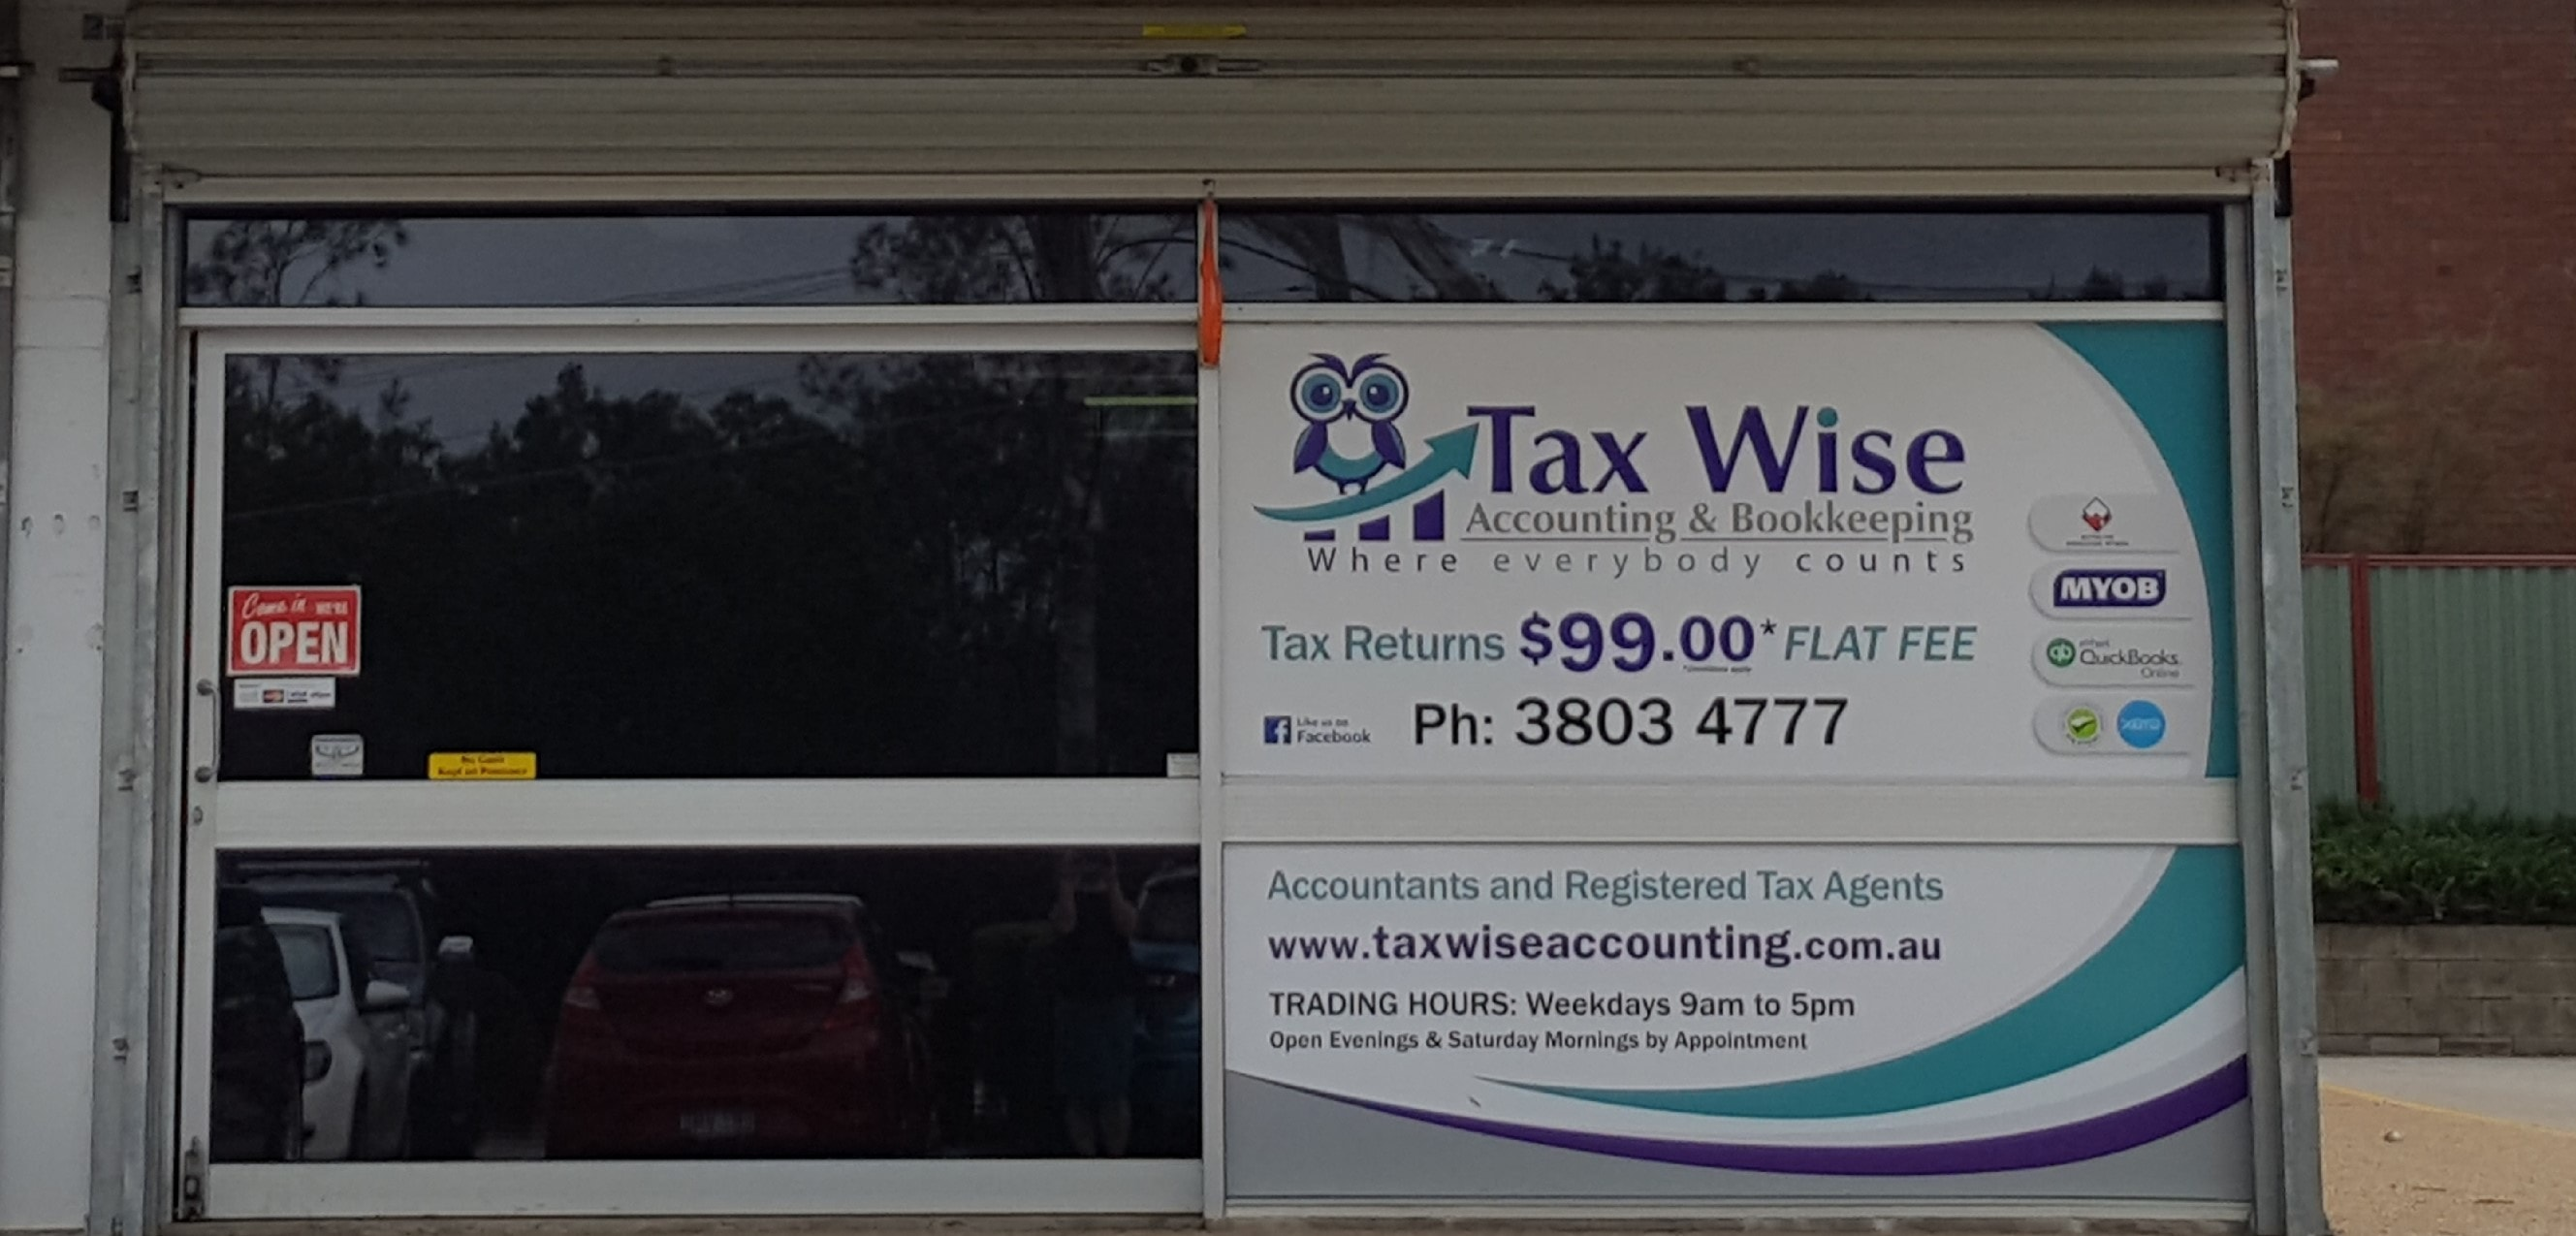 tax accoutants brisbane Tax Wise Accounting